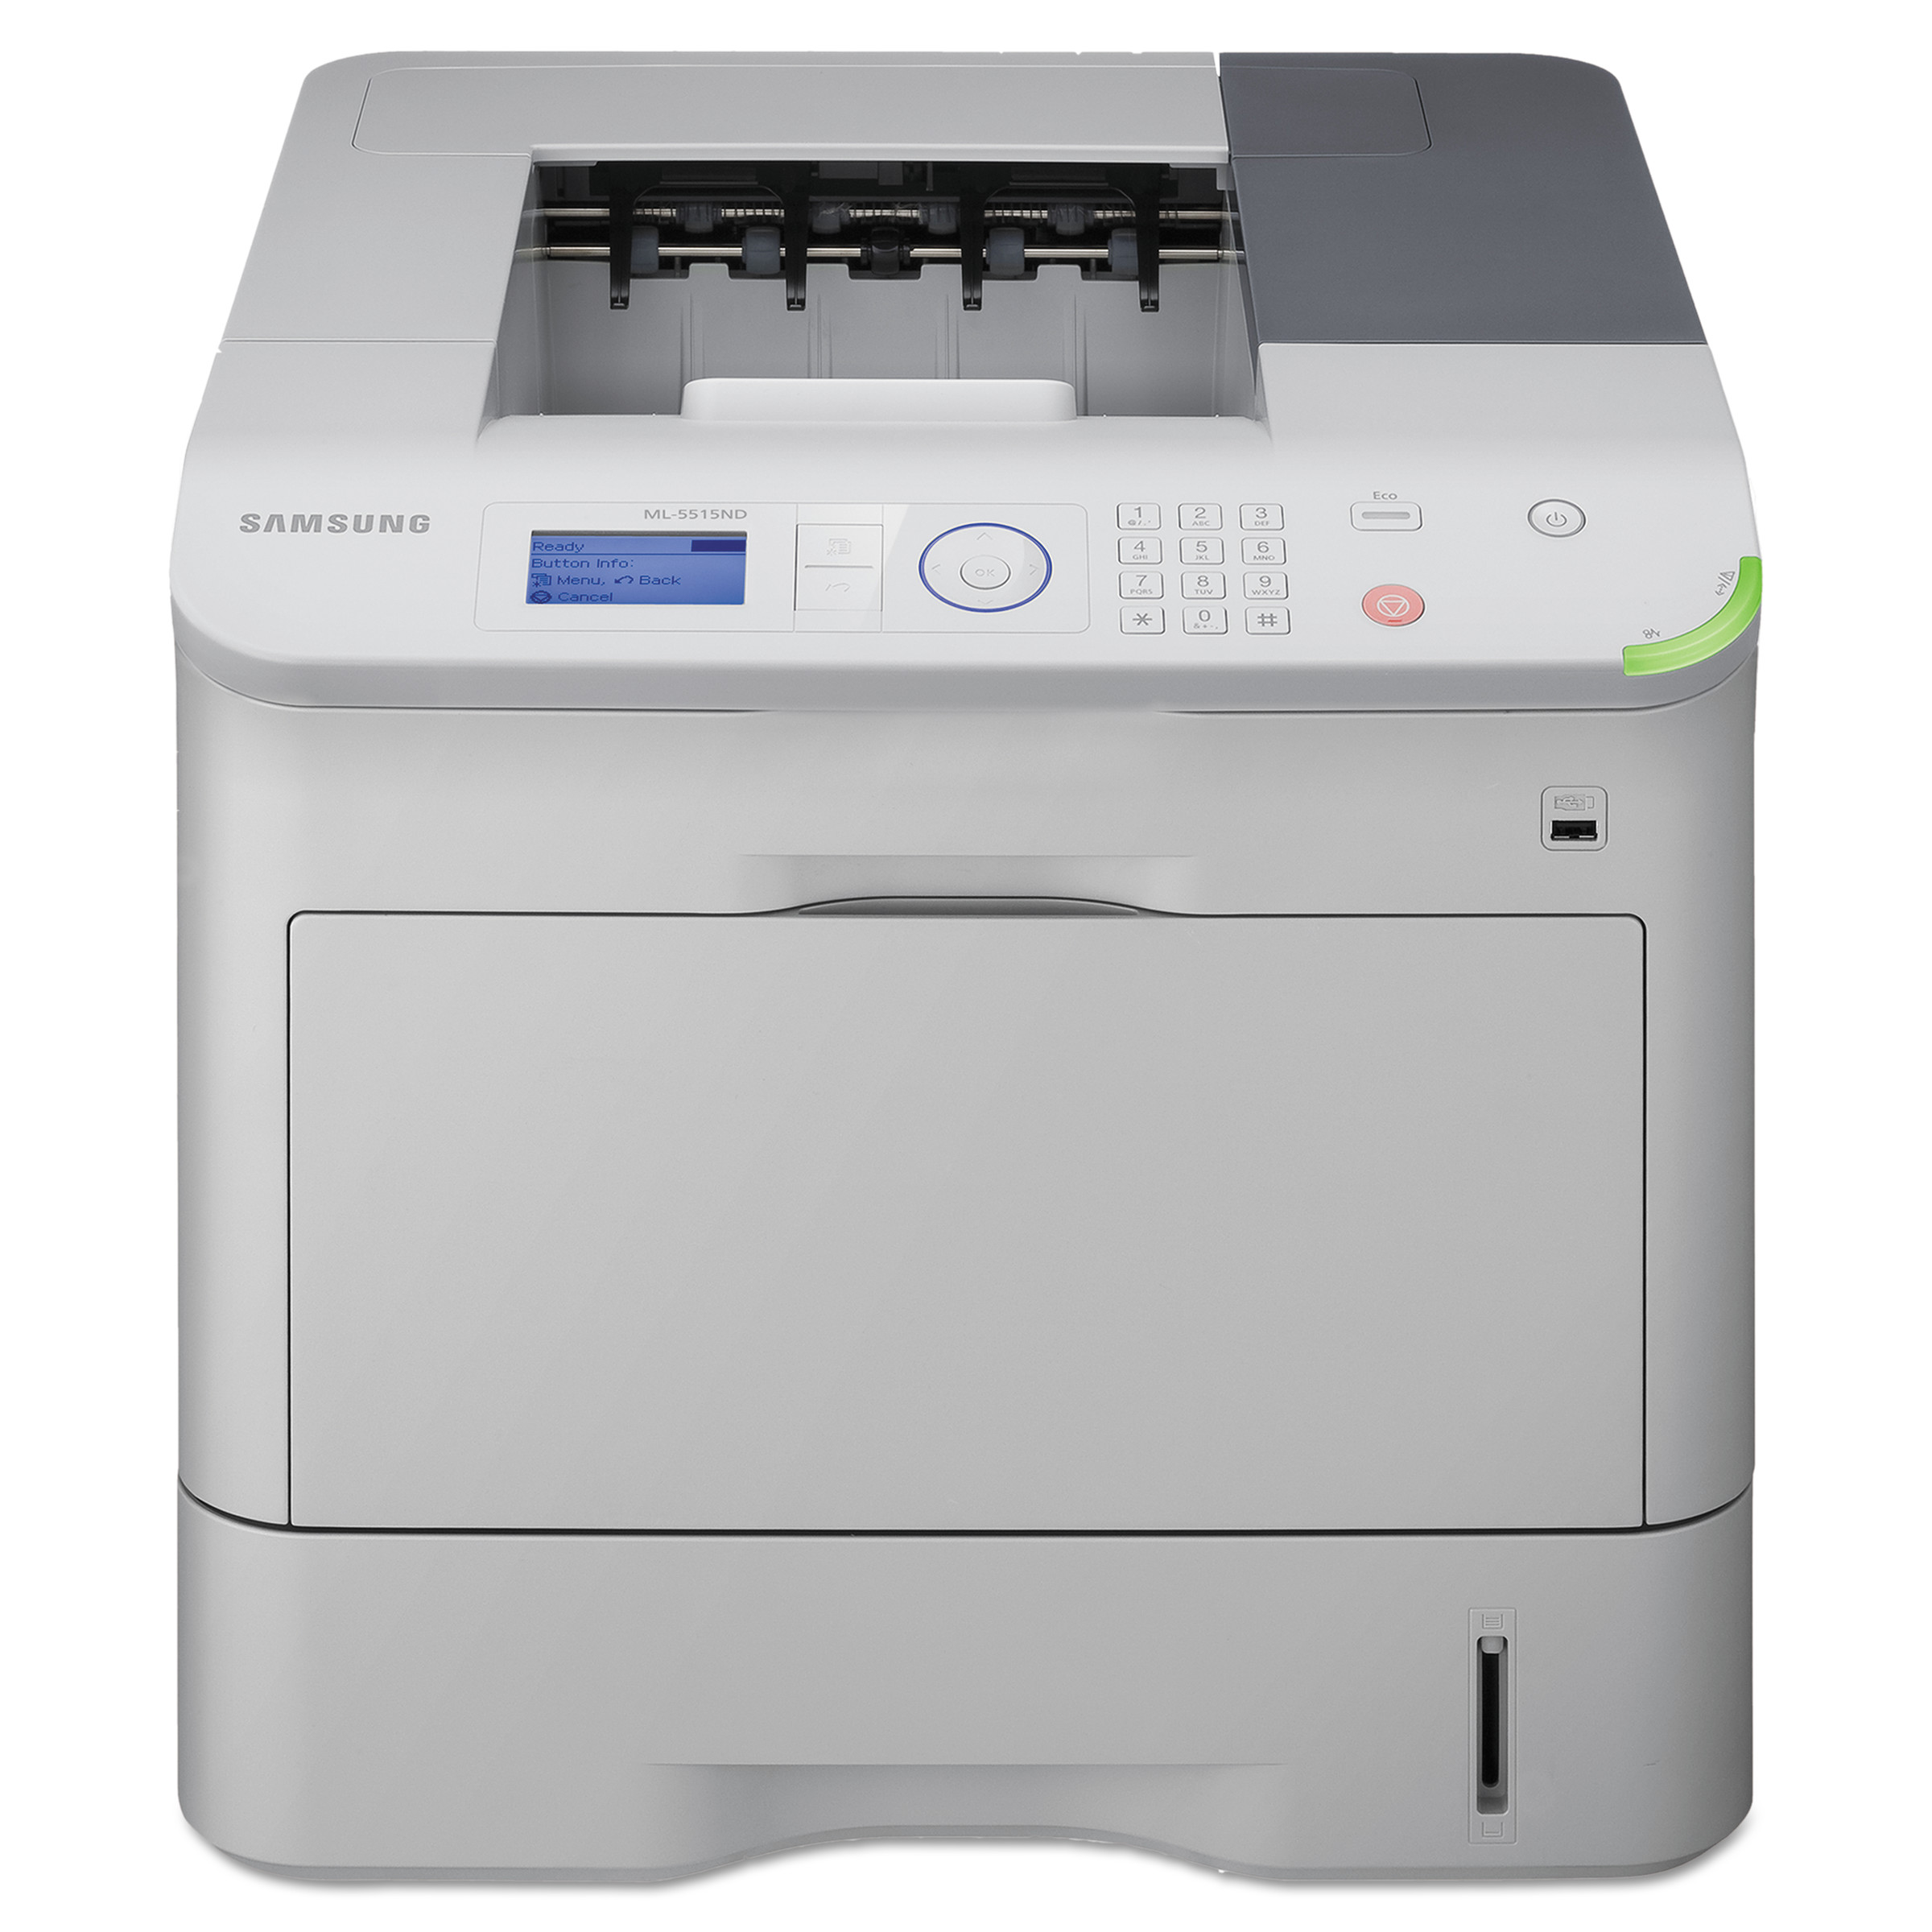 Samsung ML-5500 Series Mono Laser Printer, 600 MHz Dual Core by Samsung